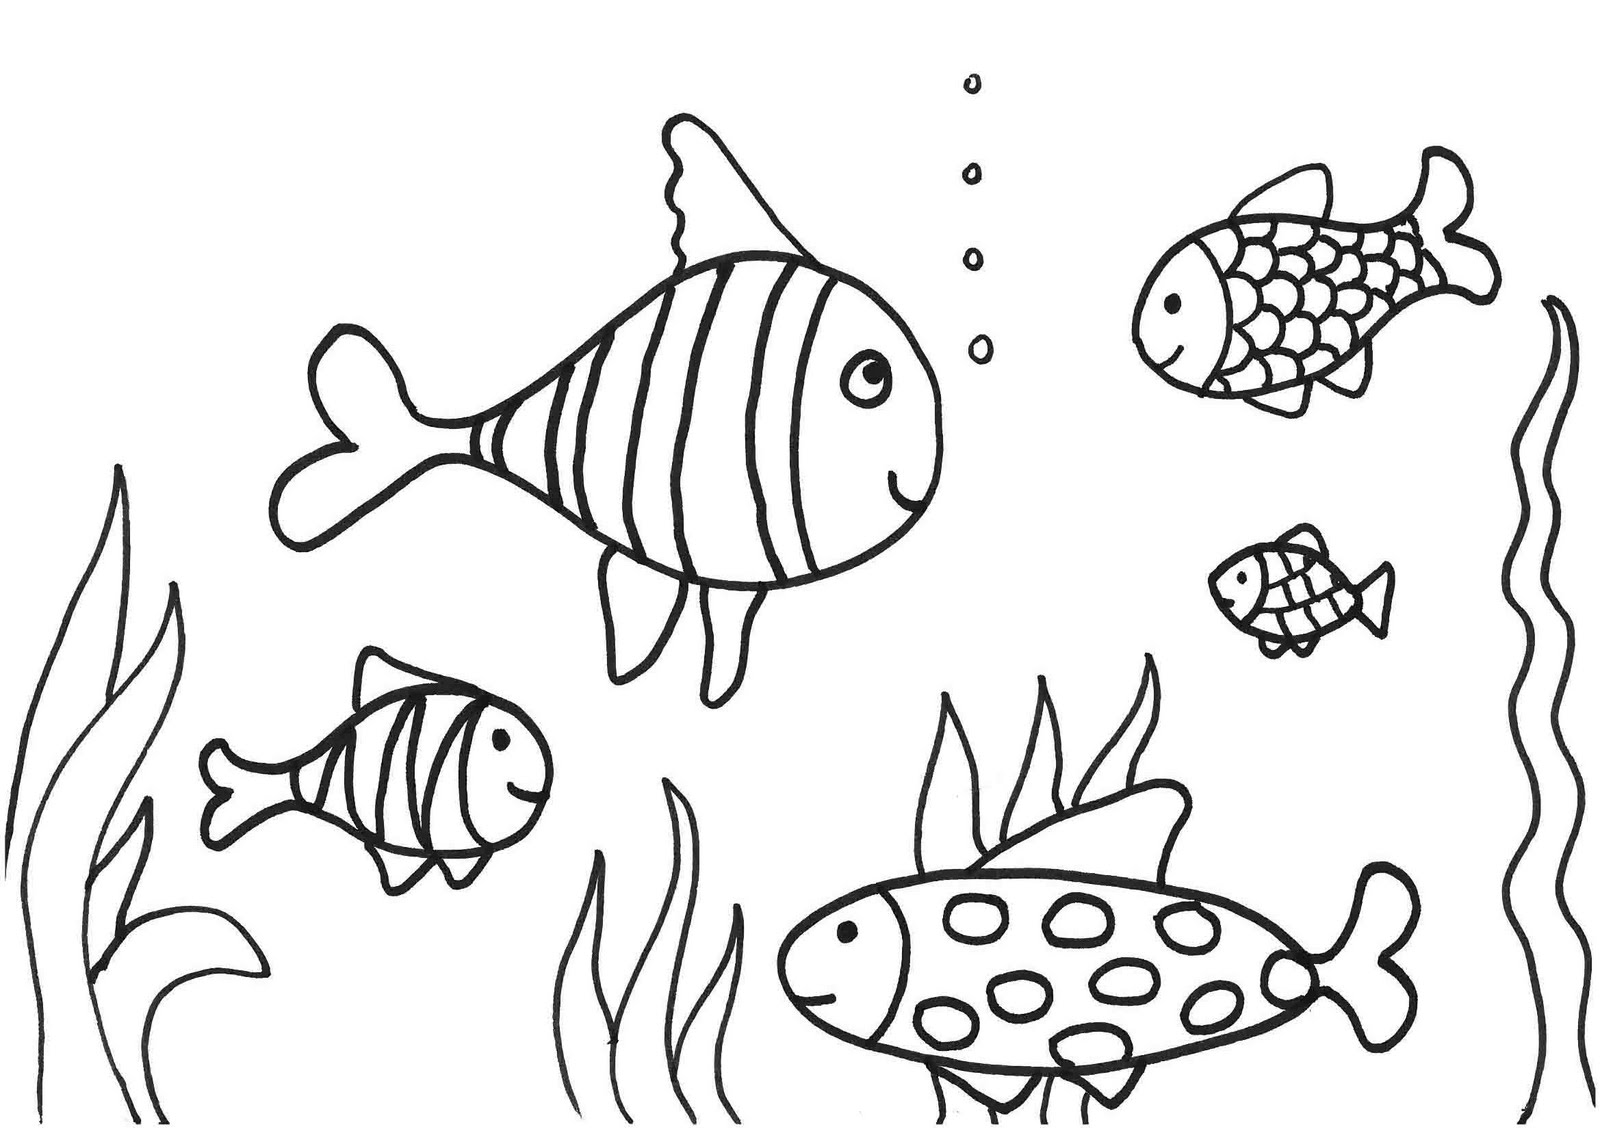 coloring fish pages print download cute and educative fish coloring pages coloring fish pages 1 1